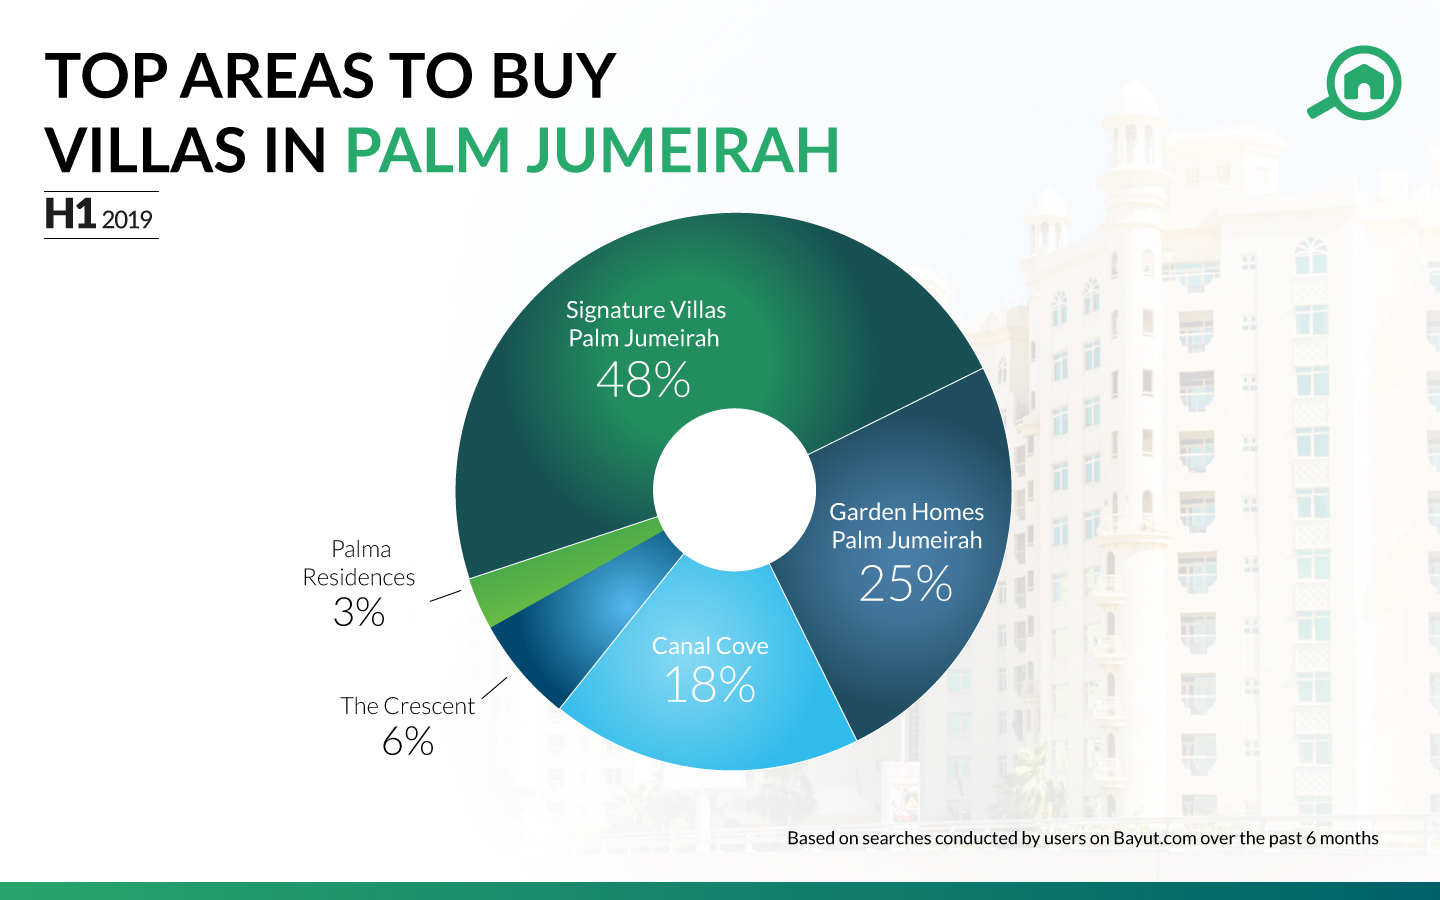 Top places to buy villas in Palm Jumeirah